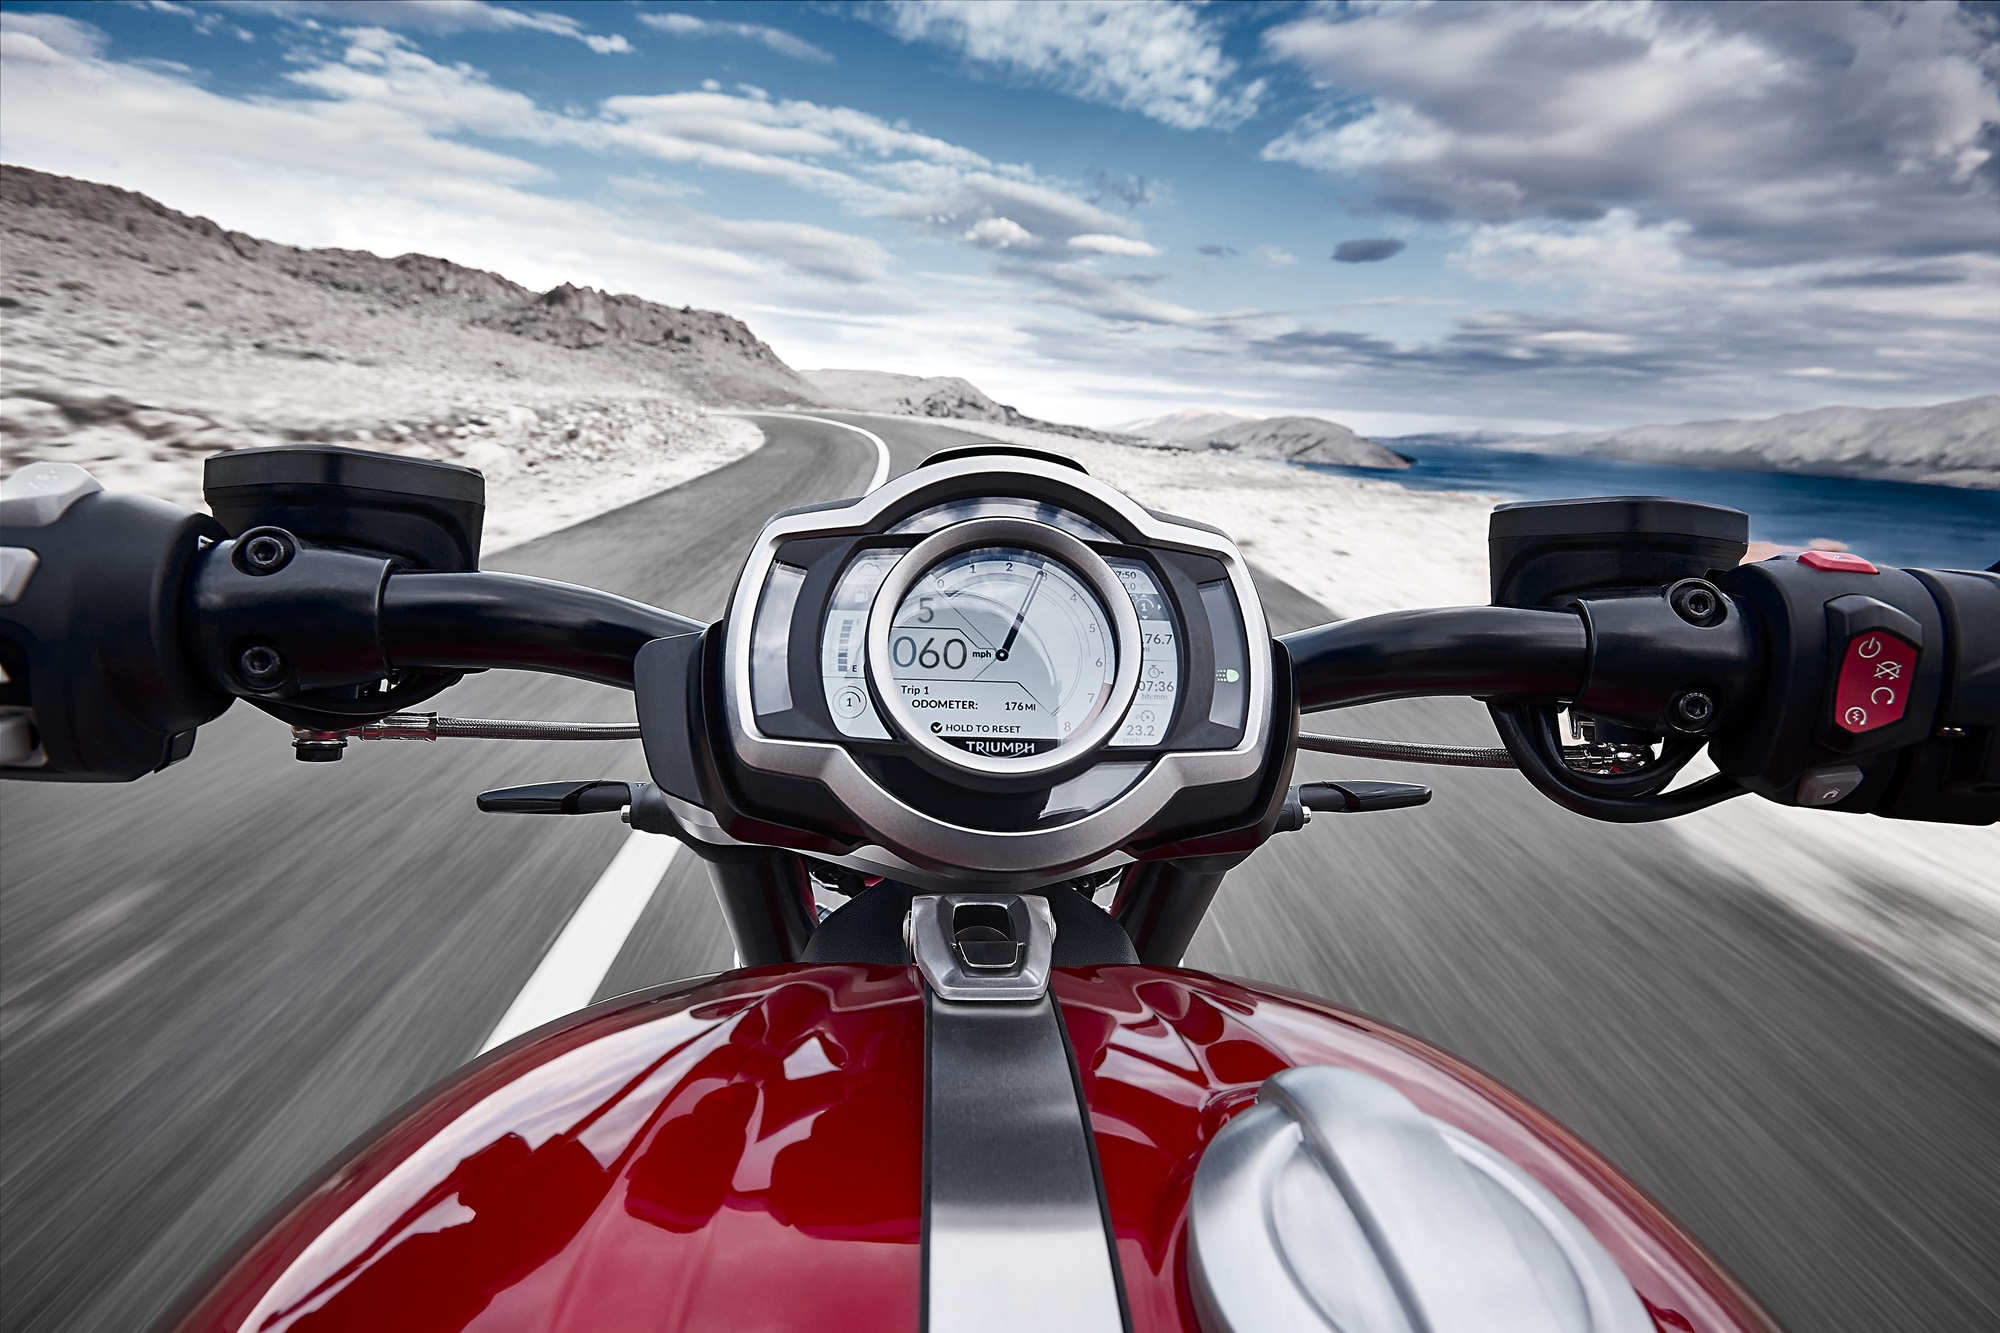 2019 Triumph Rocket 3 R and GT speedometer